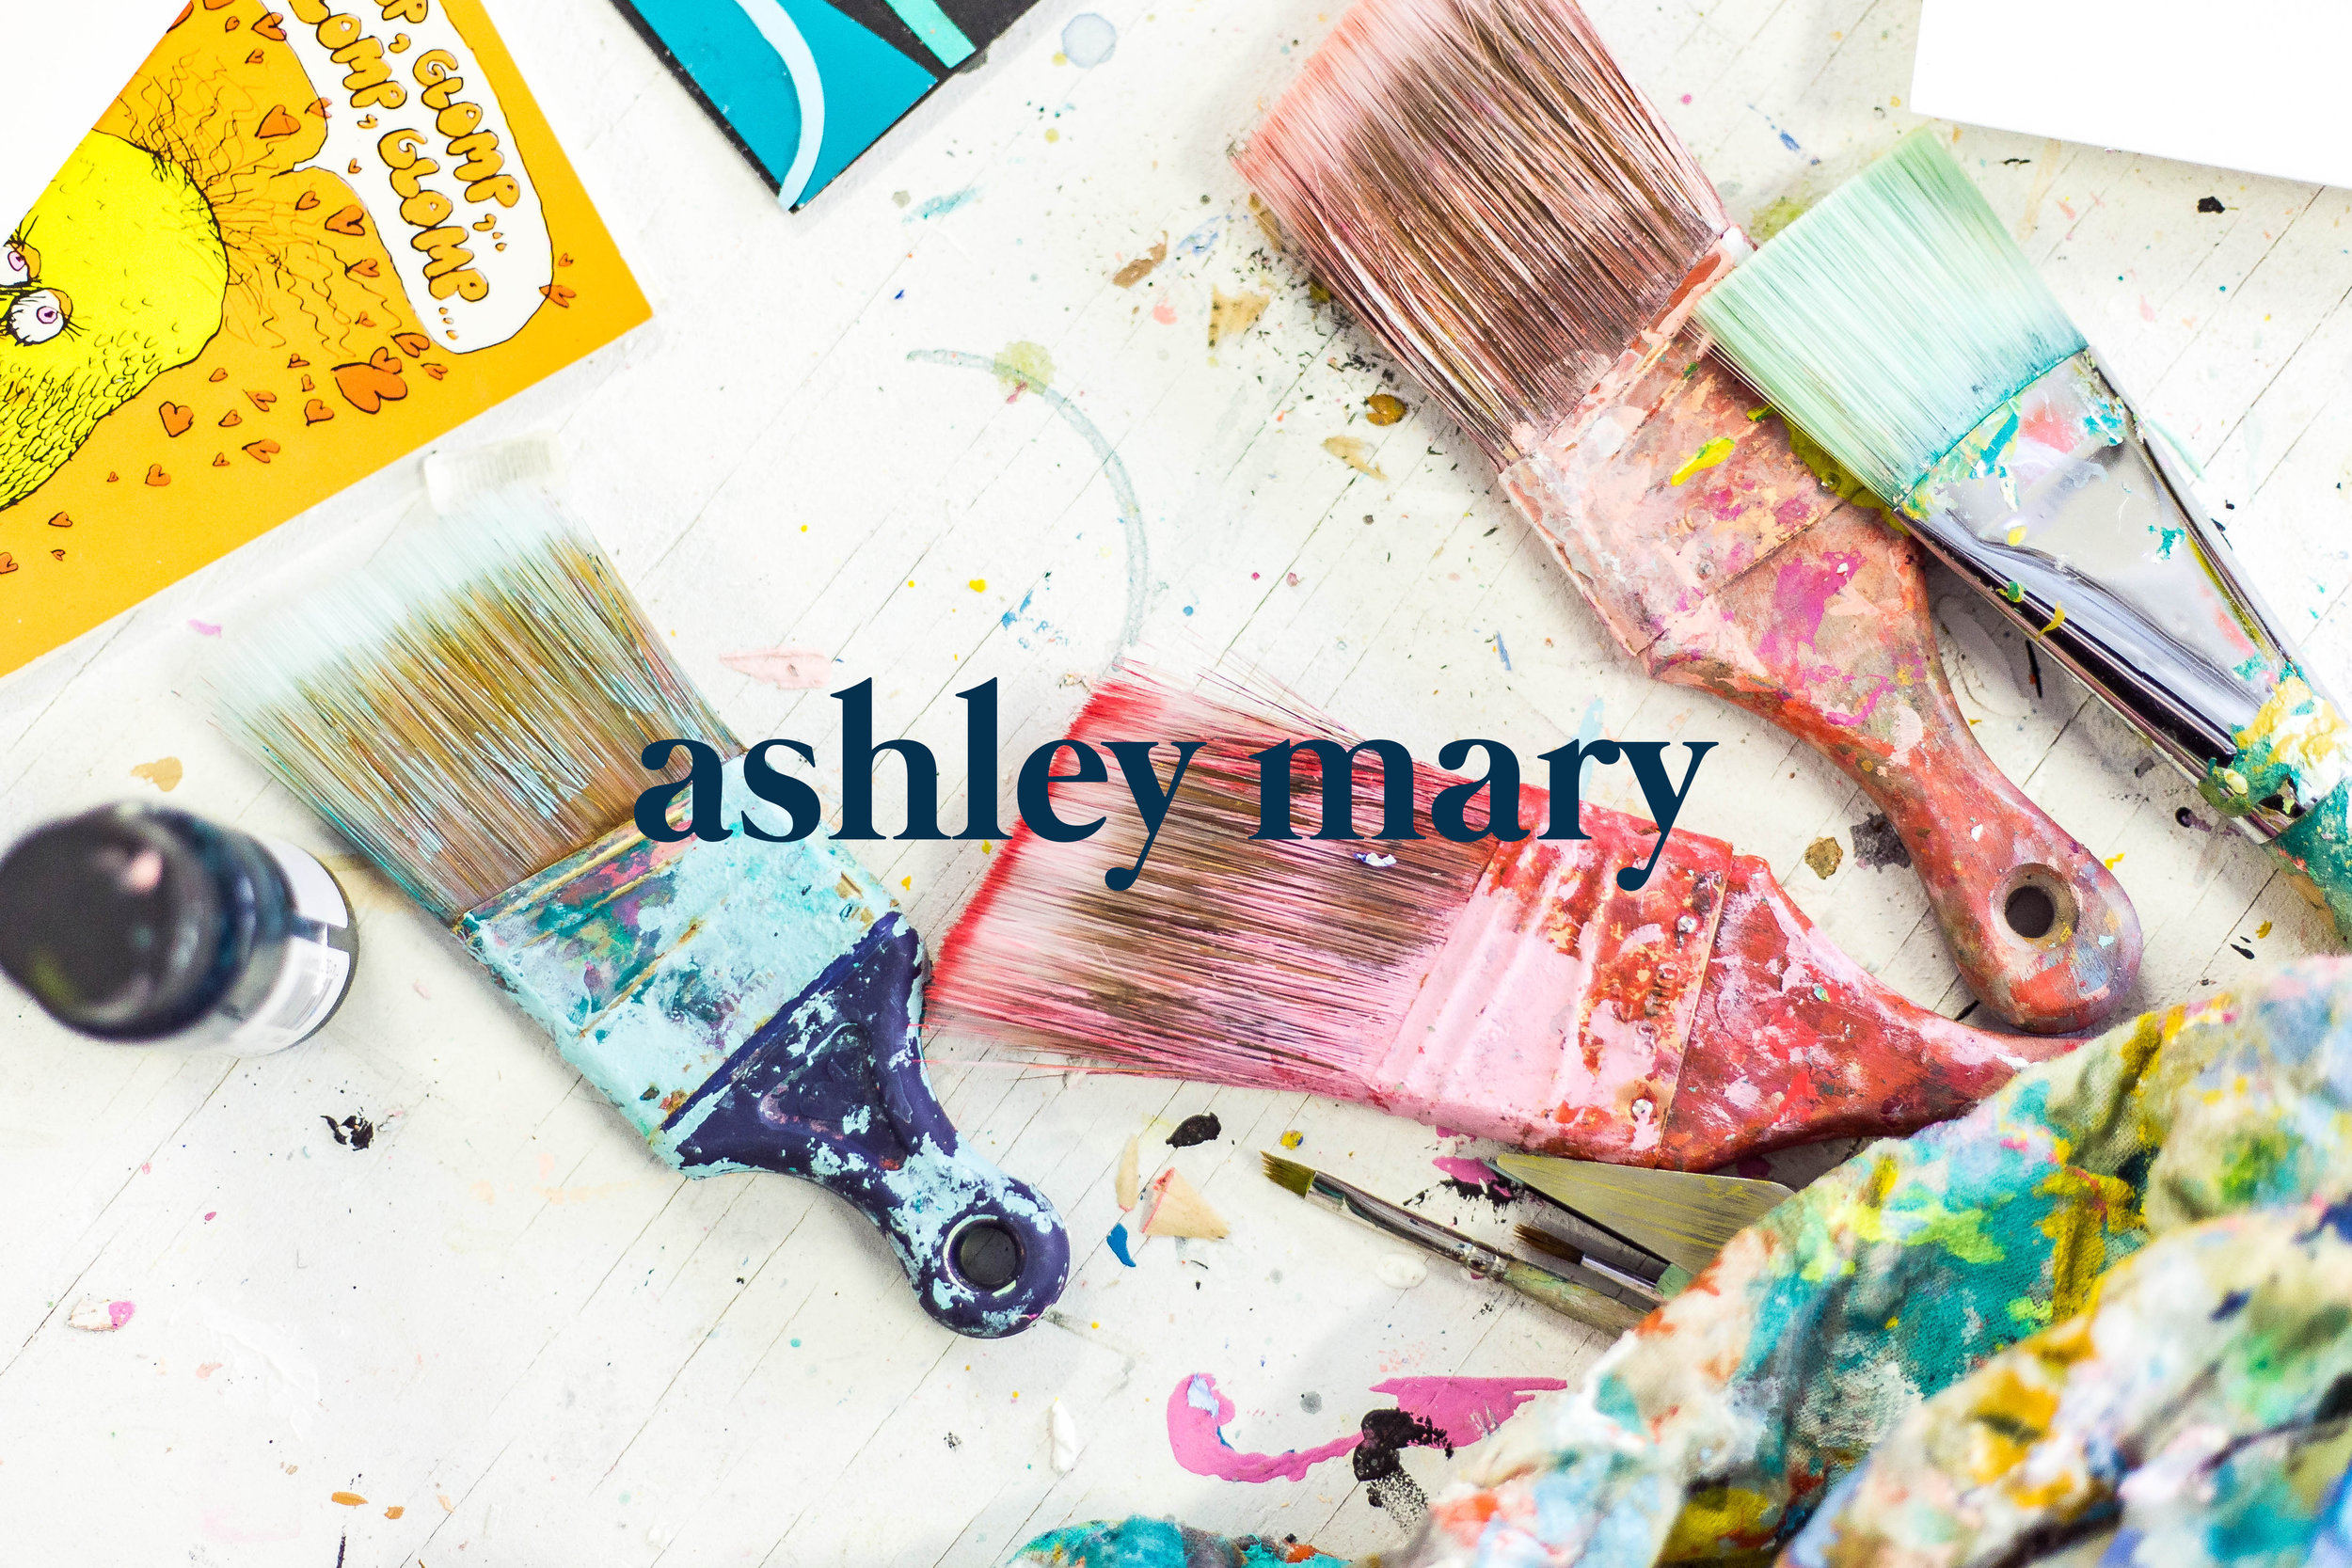 Ashley Header.jpg